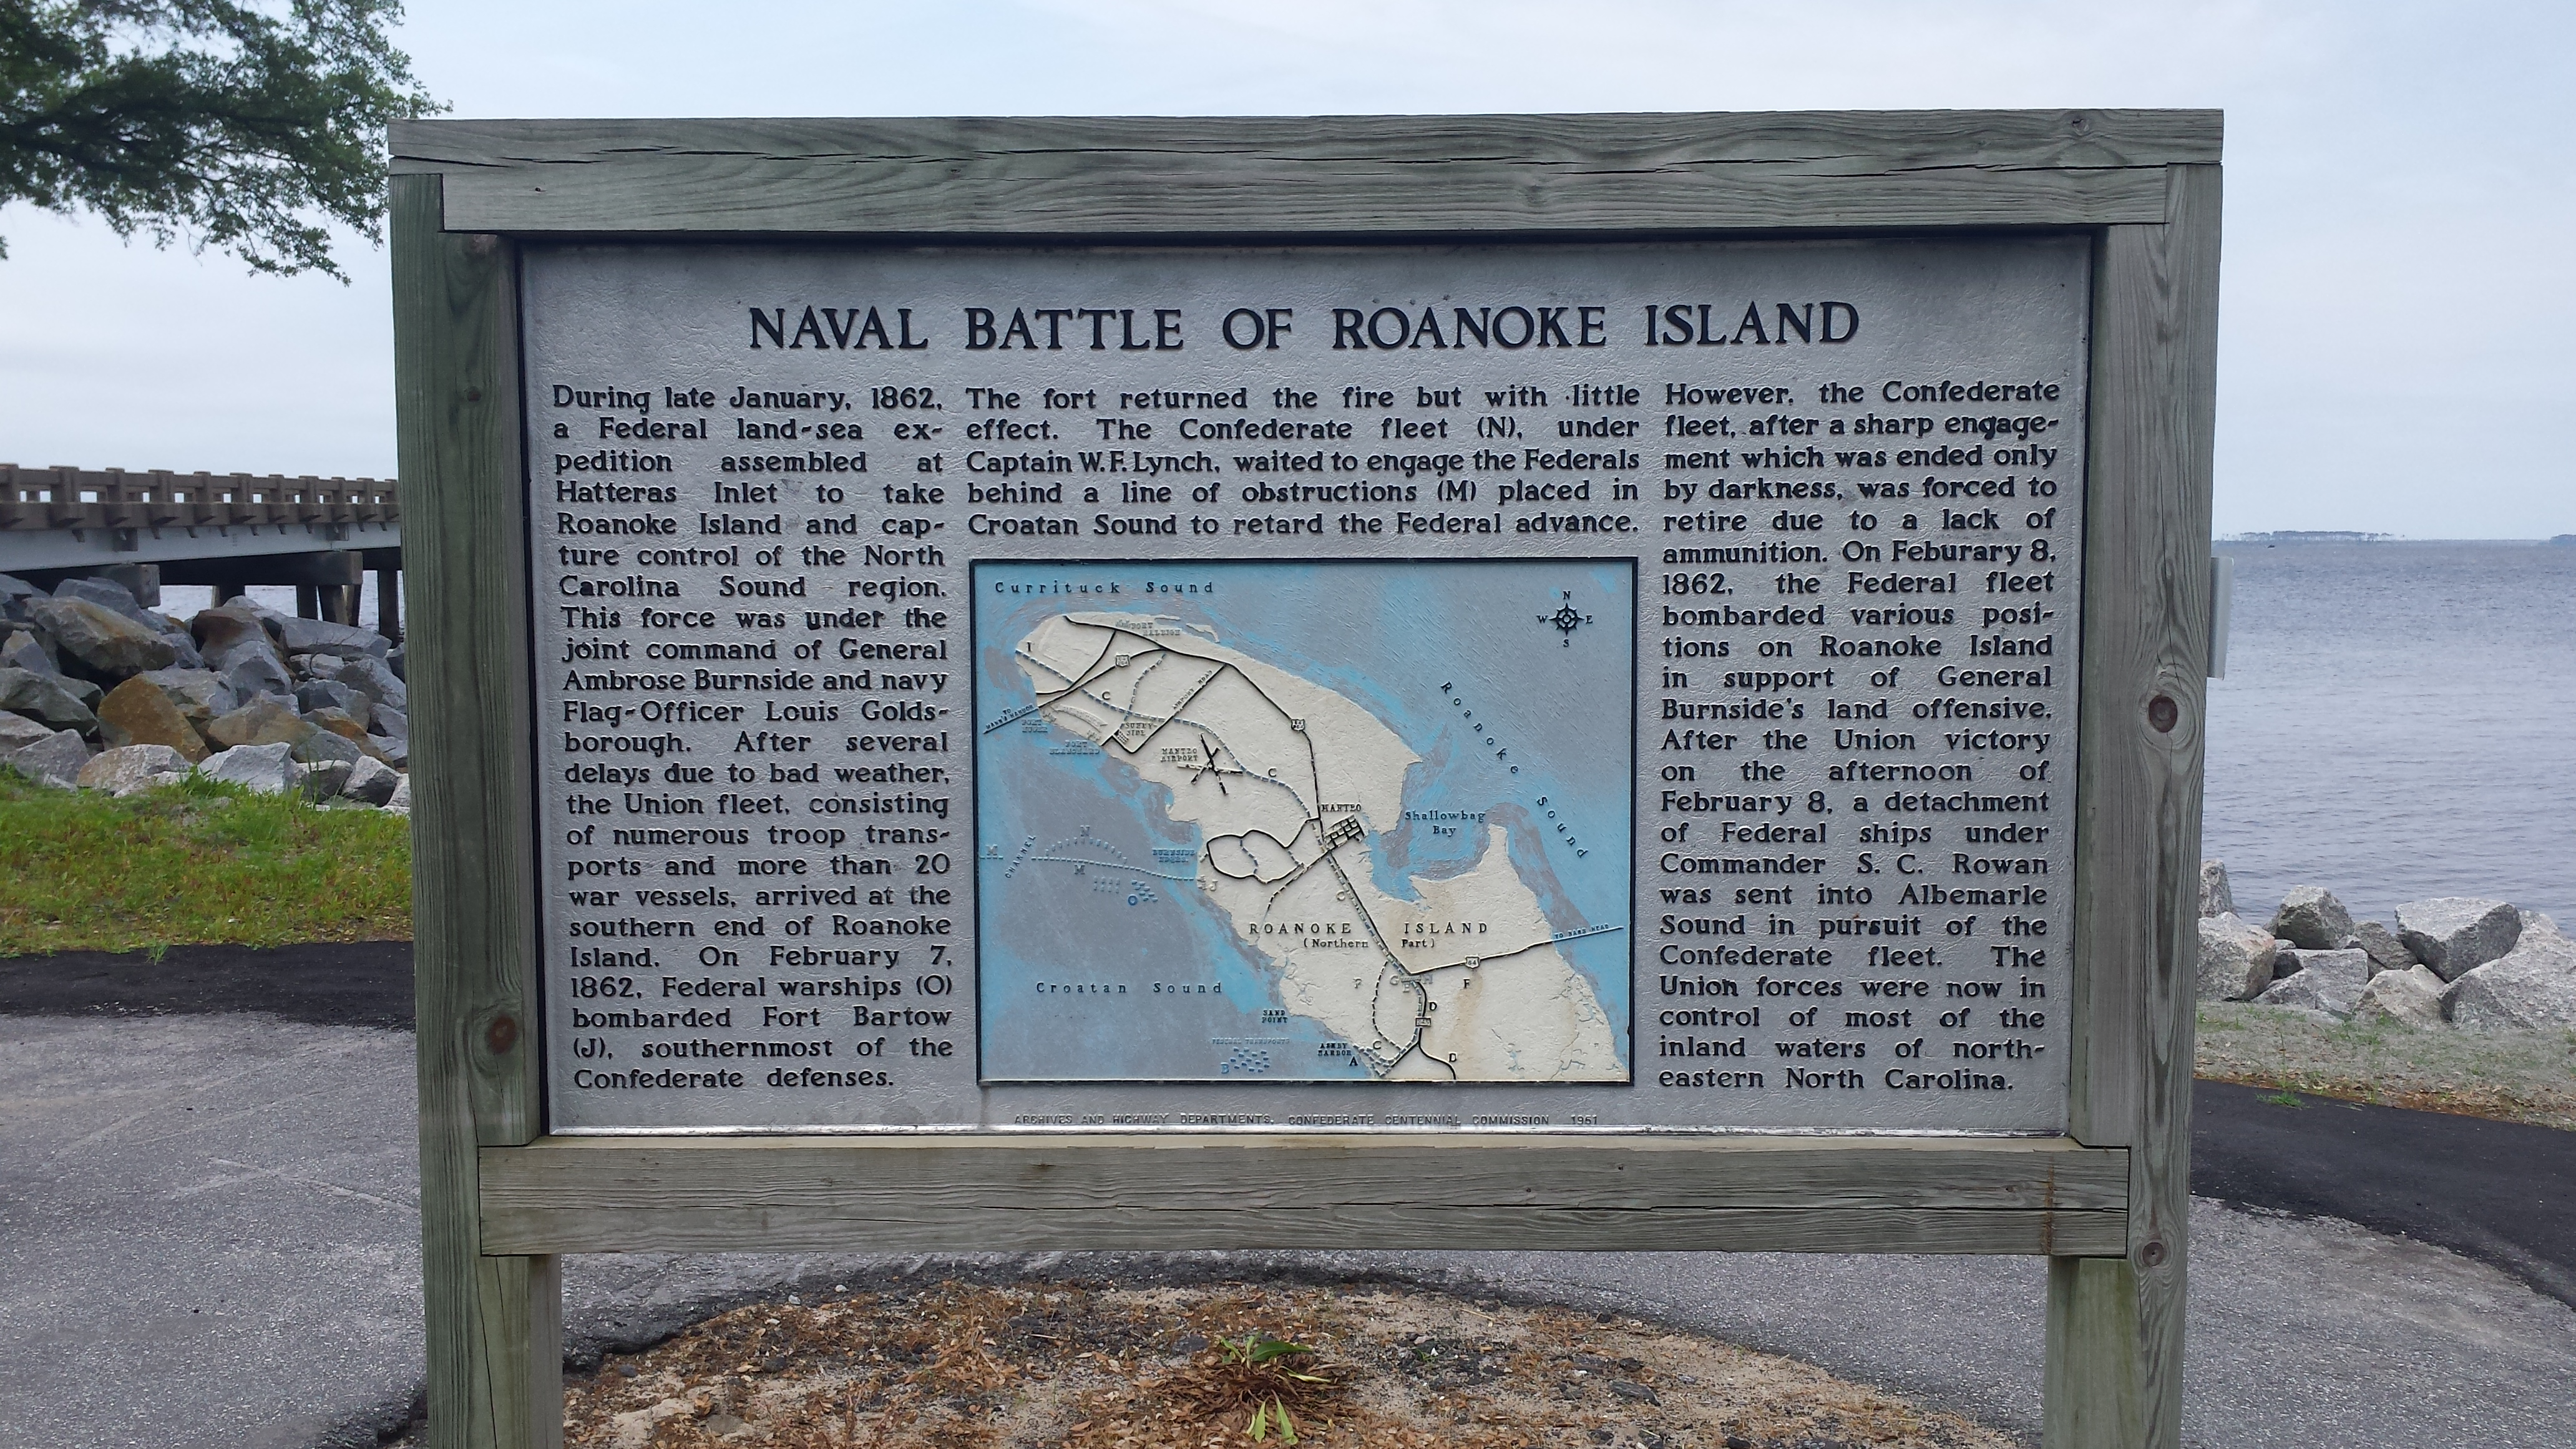 Monument commemorating the naval battle of Roanoke Island.